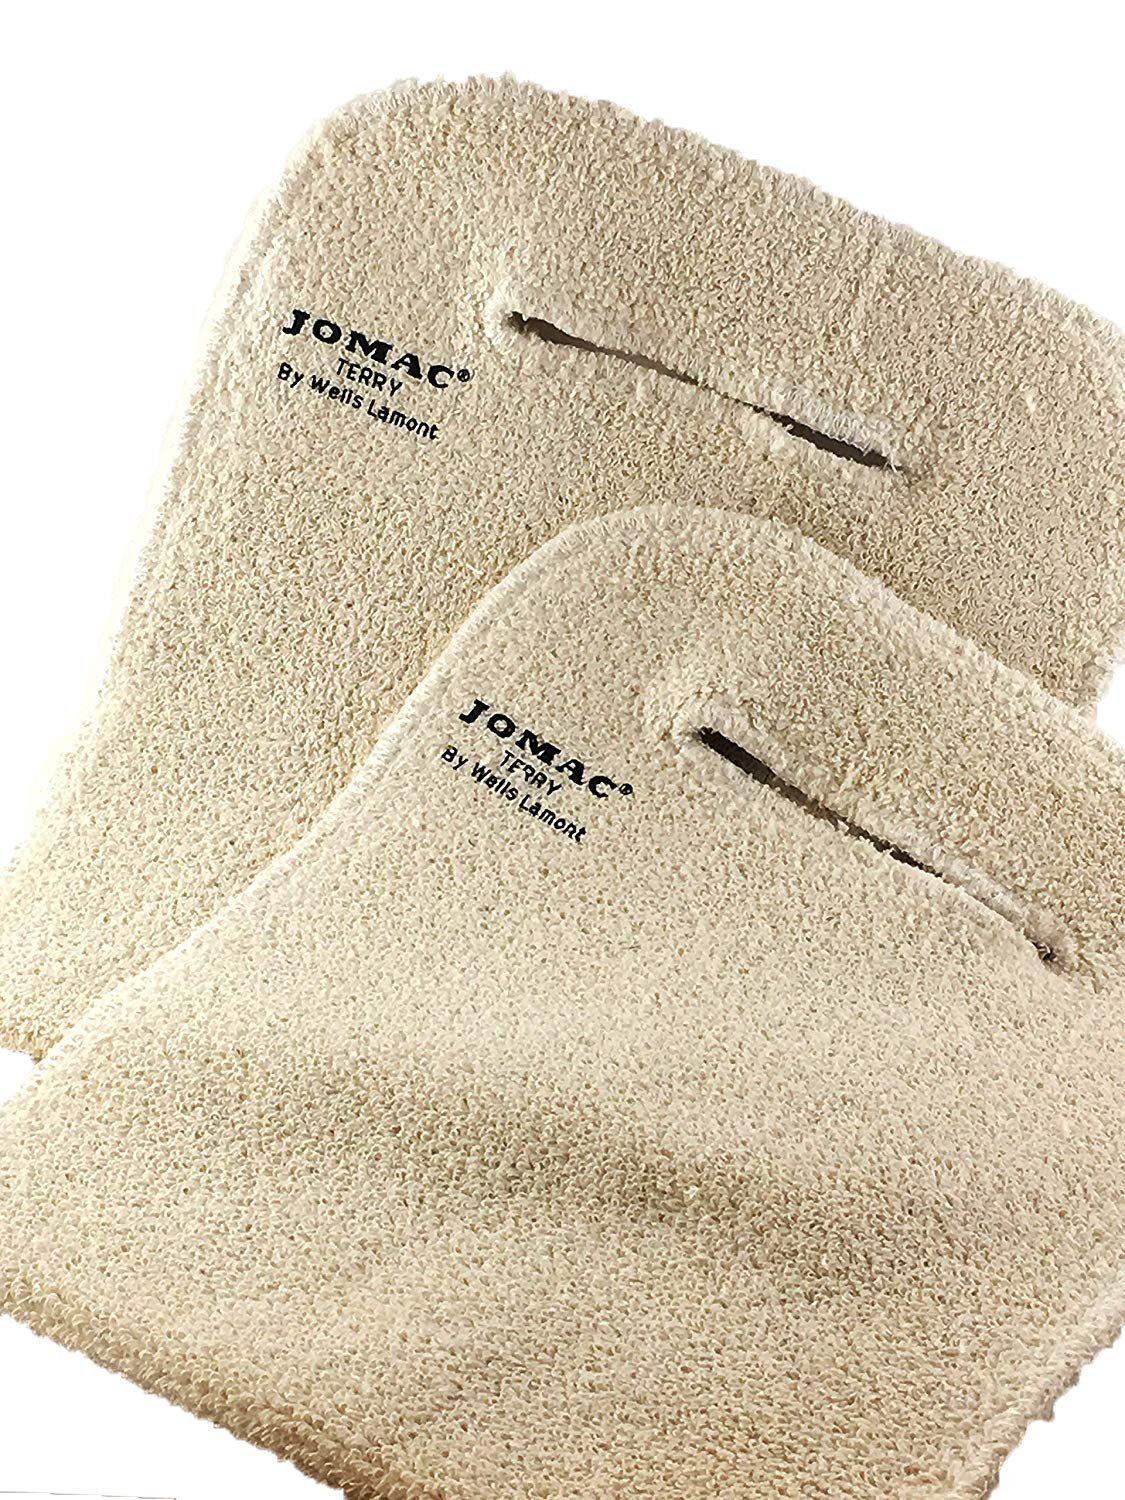 "Artisan Baking Co Oven Mitt/Hot Pad, Industrial Professional Grade Terry Cloth (9""x11"" Bakers Pad)"